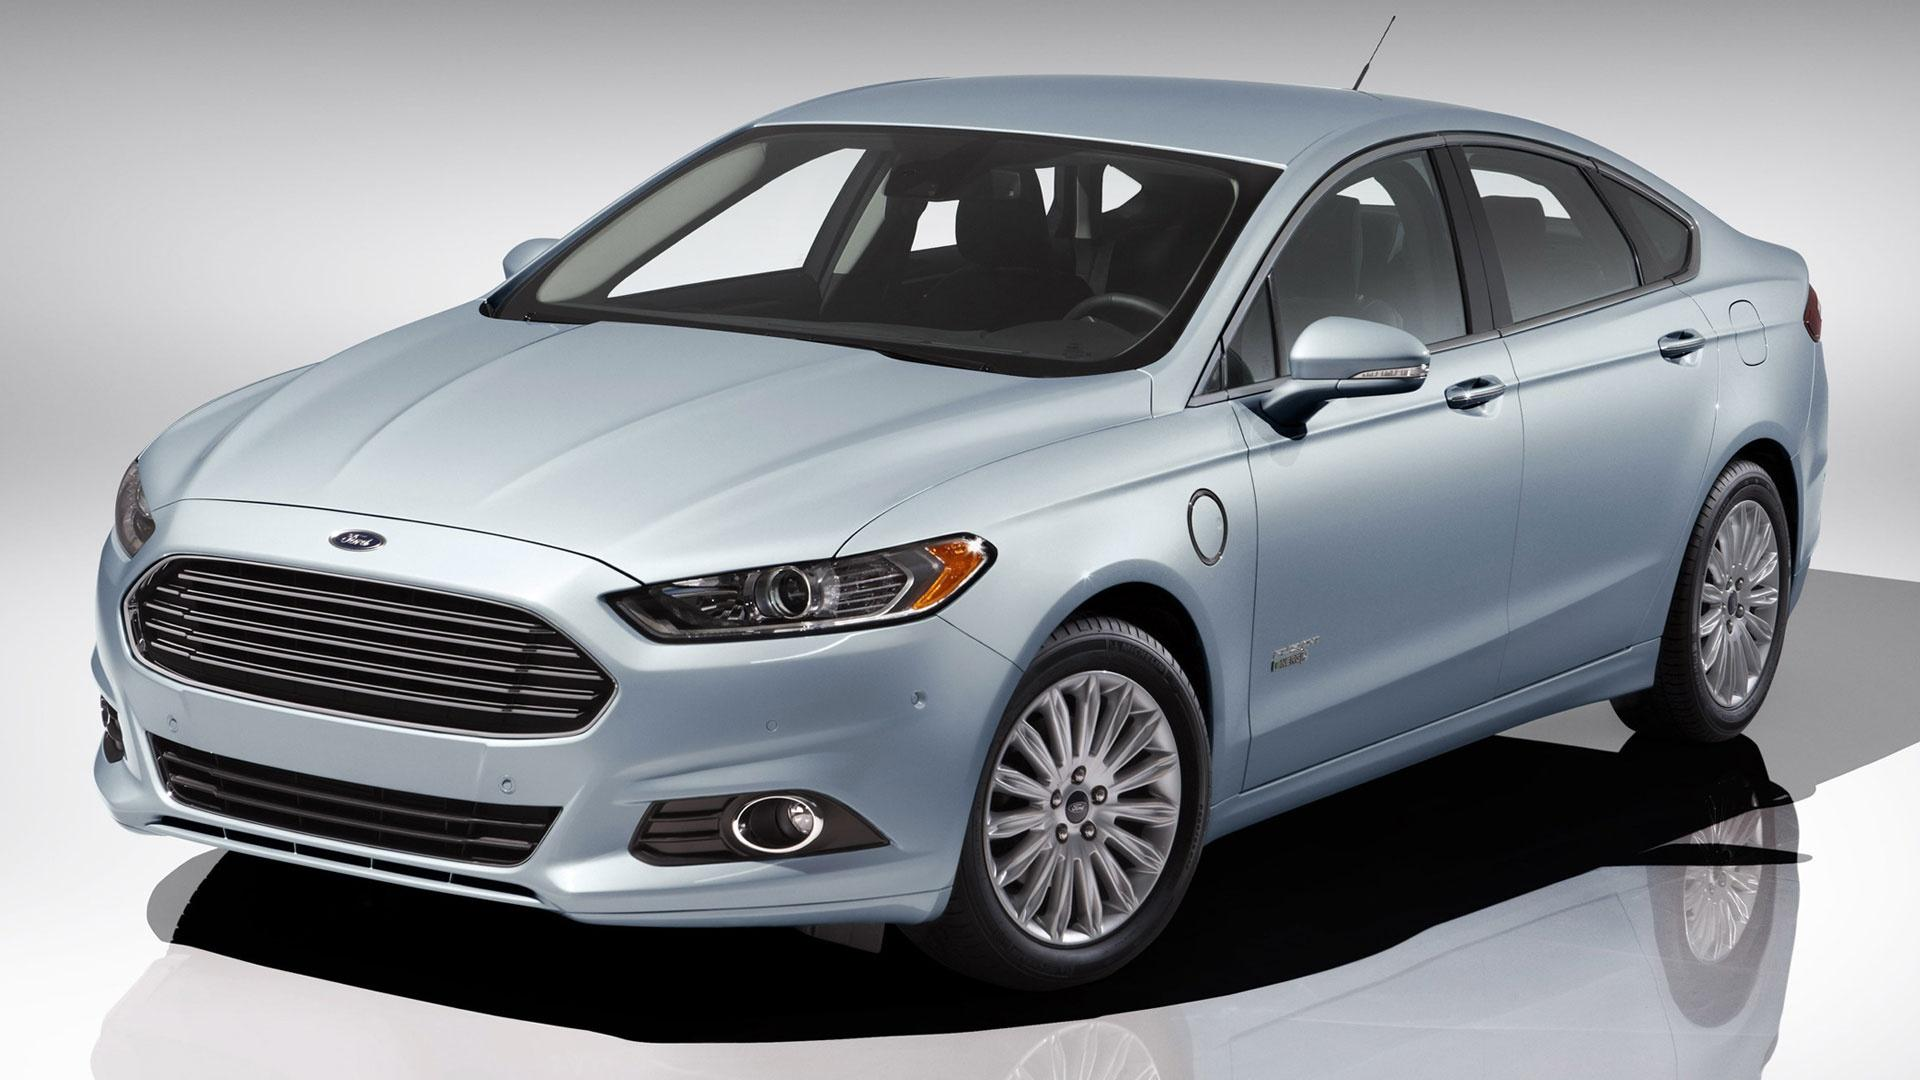 2013 Ford Fusion Energi & 2013 Chevrolet Traverse/Buick Encl image